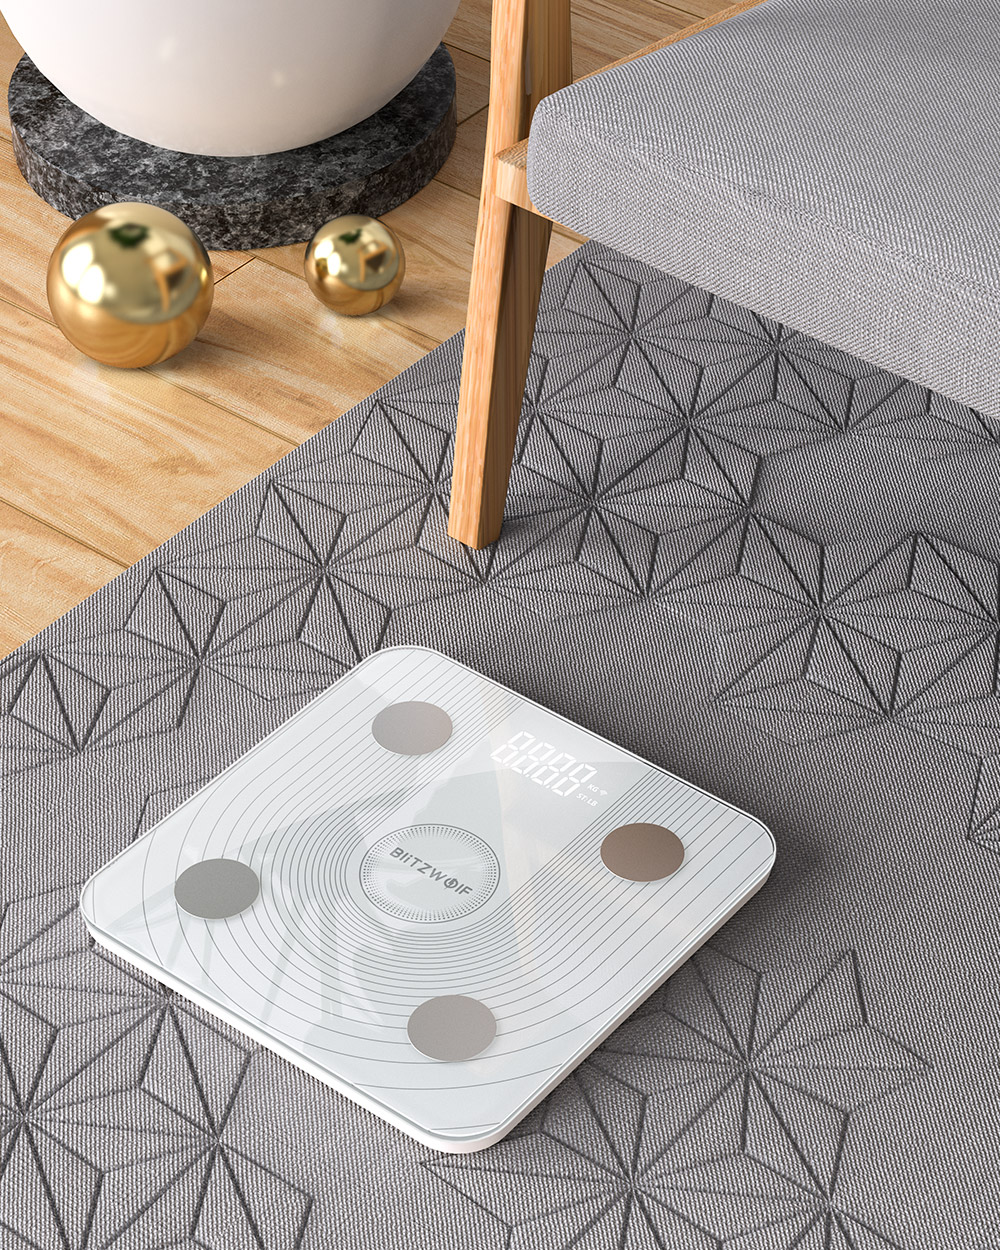 Blitzwolf® BW-SC1 smart scale